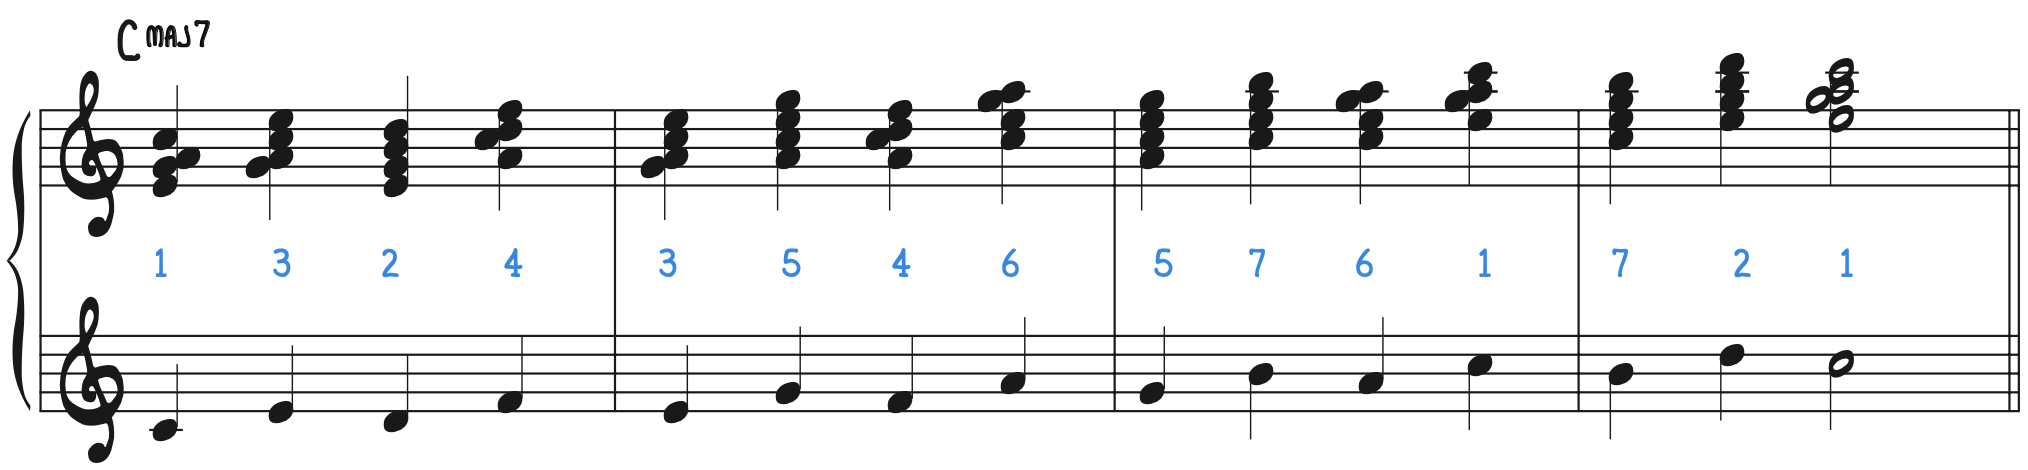 Block Chords Practice Suggestion 2